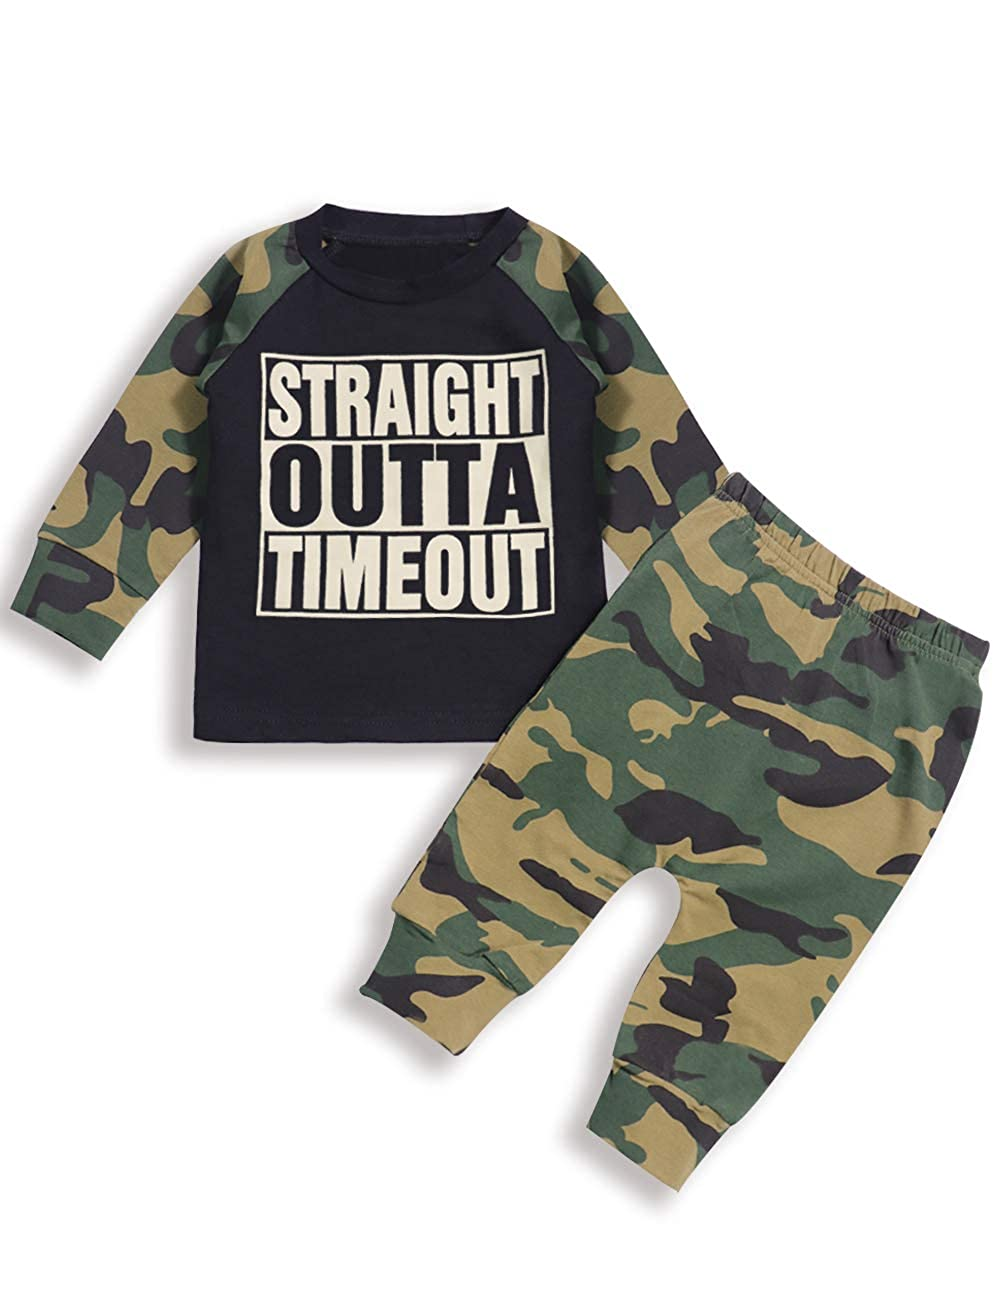 Infant Baby Boy Clothes Long Sleeve Funny Letter Sweatshirt Top + Camouflage Pants Outfit Set itkidboy